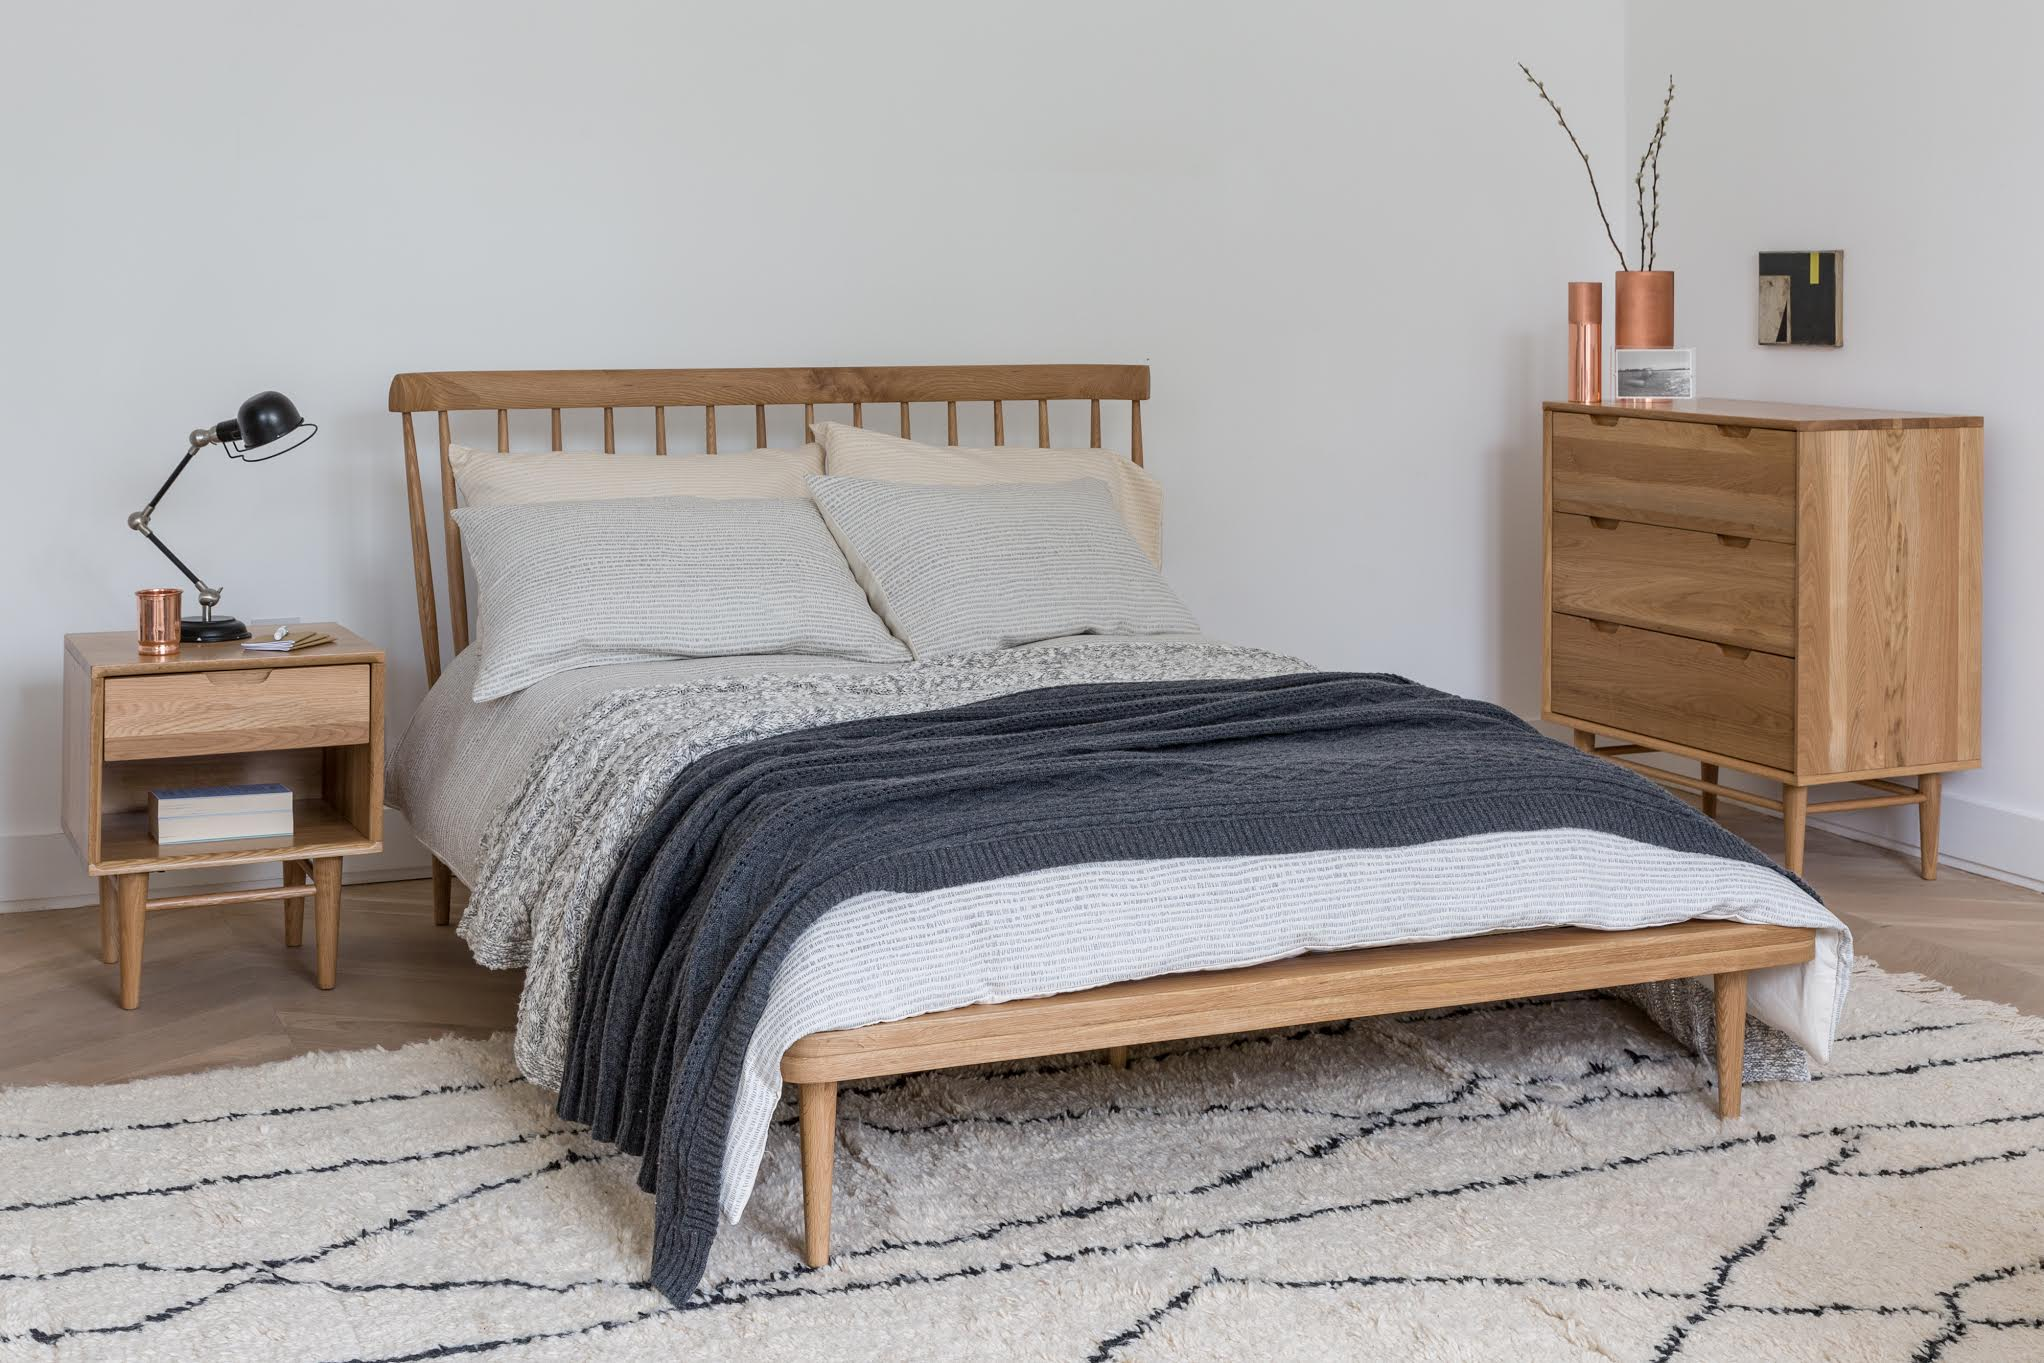 20 Of The Best Minimal, Scandi Style Bedside Tables